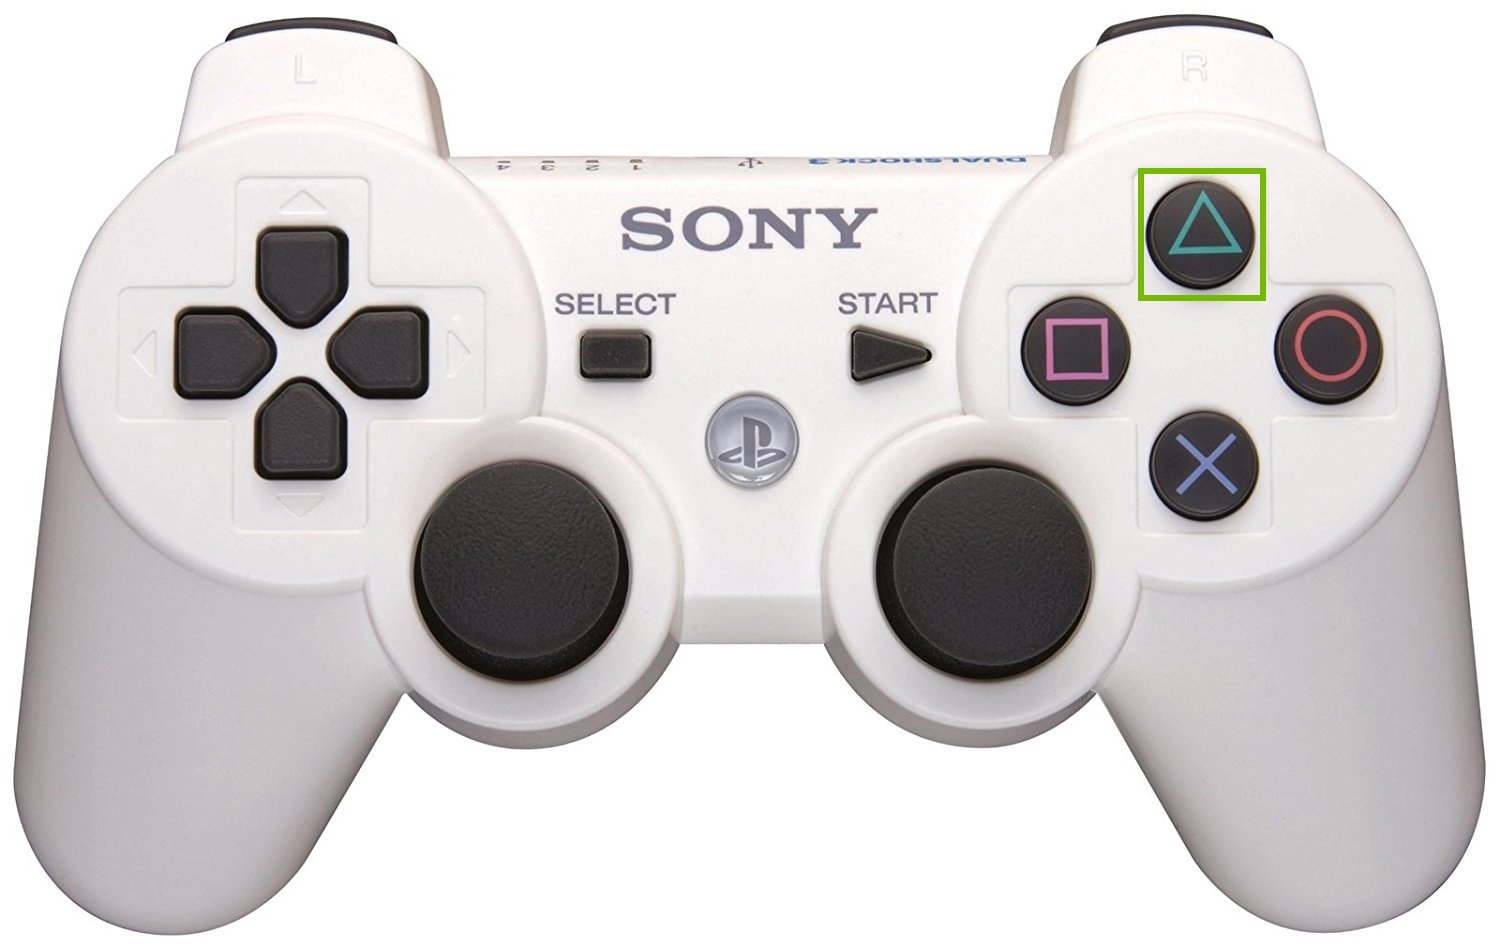 PS3 controller with Triangle button highlighted. Screenshot.